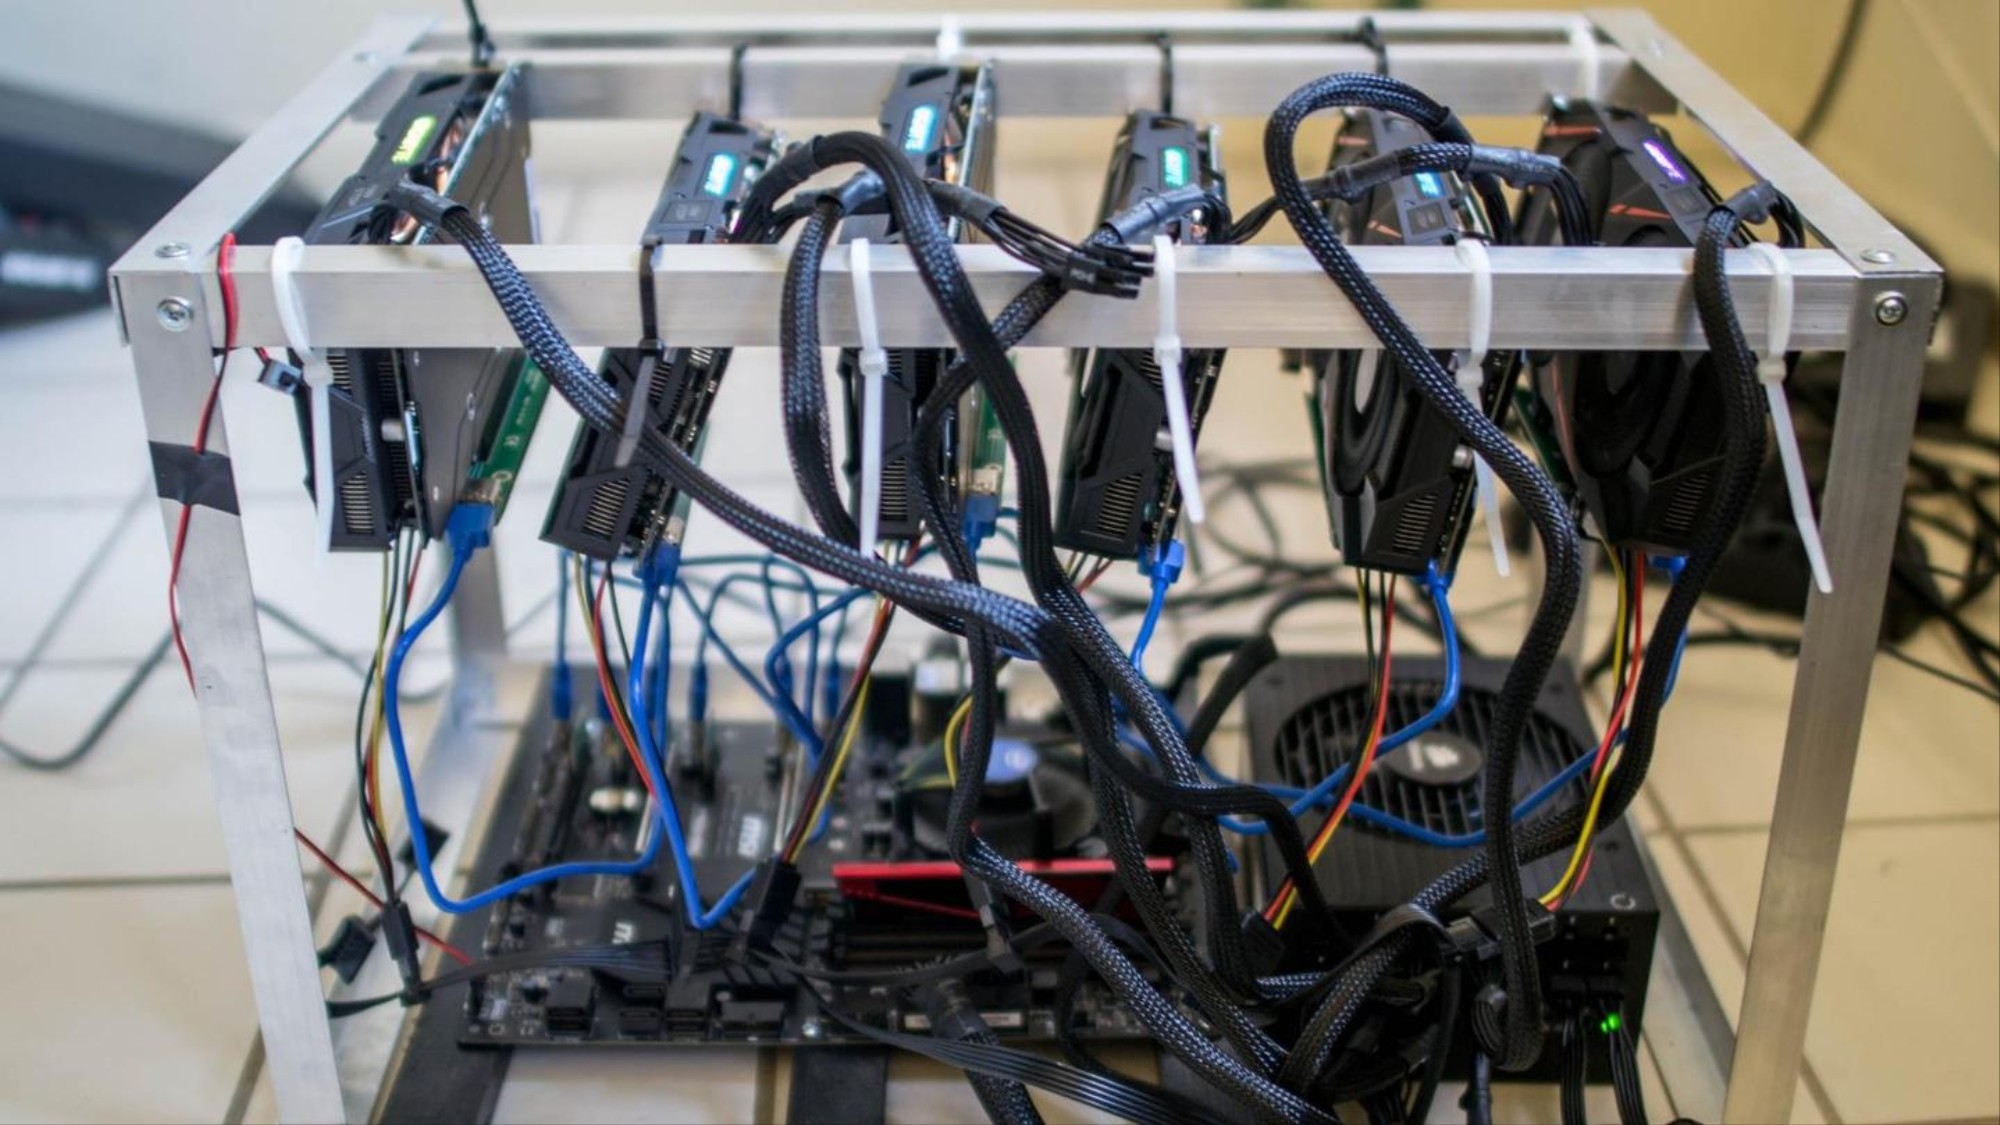 Ethereum Miners Are Selling Their Graphics Cards - VICE